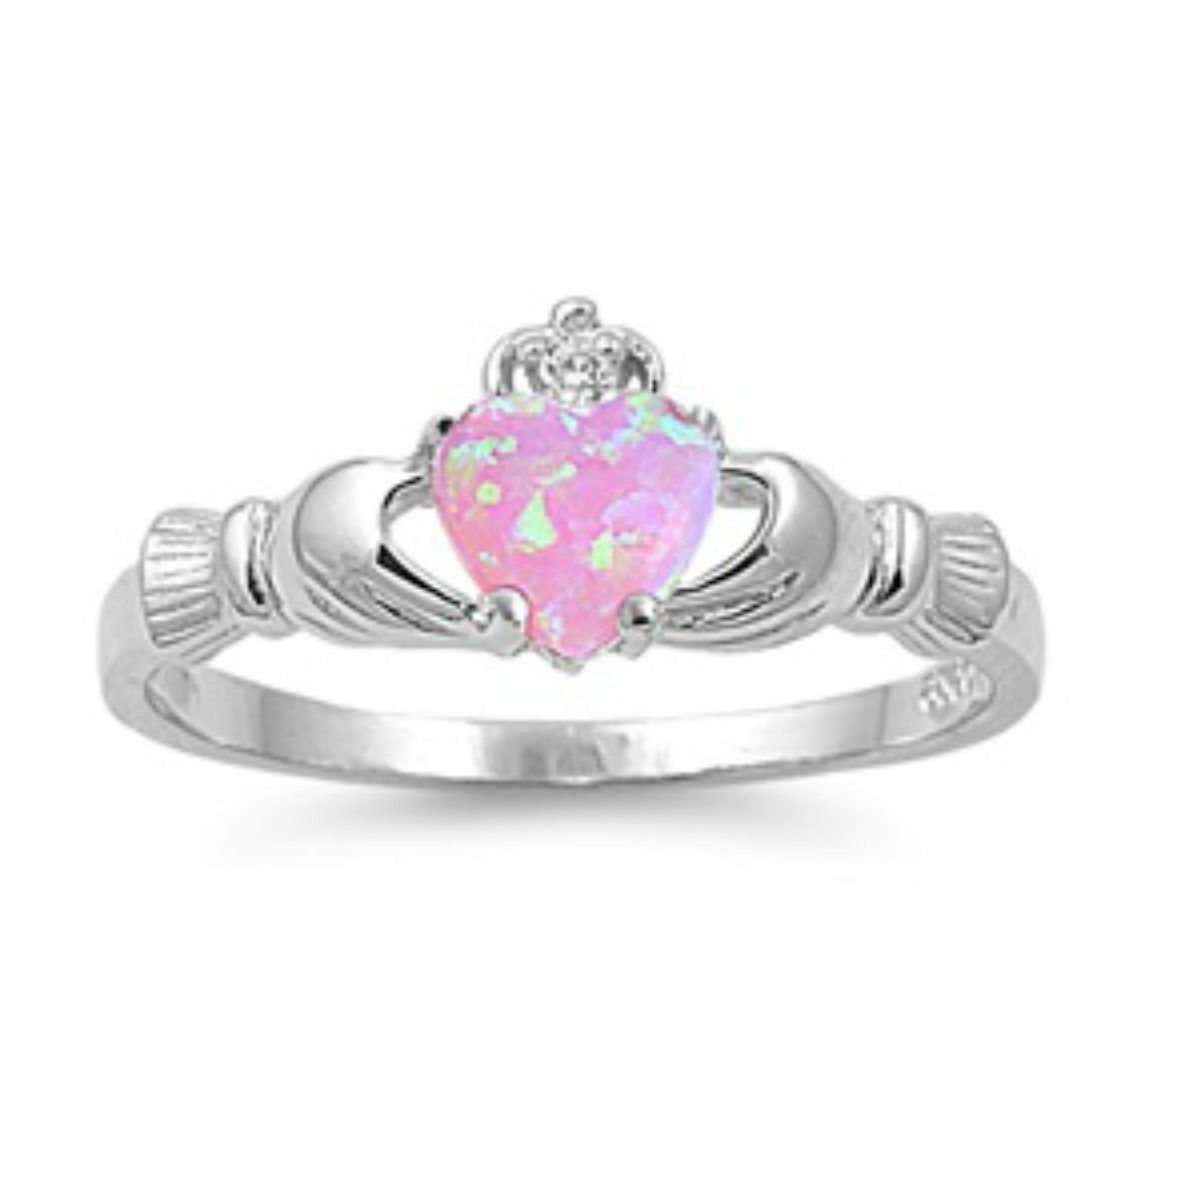 how to wear a claddagh ring when single